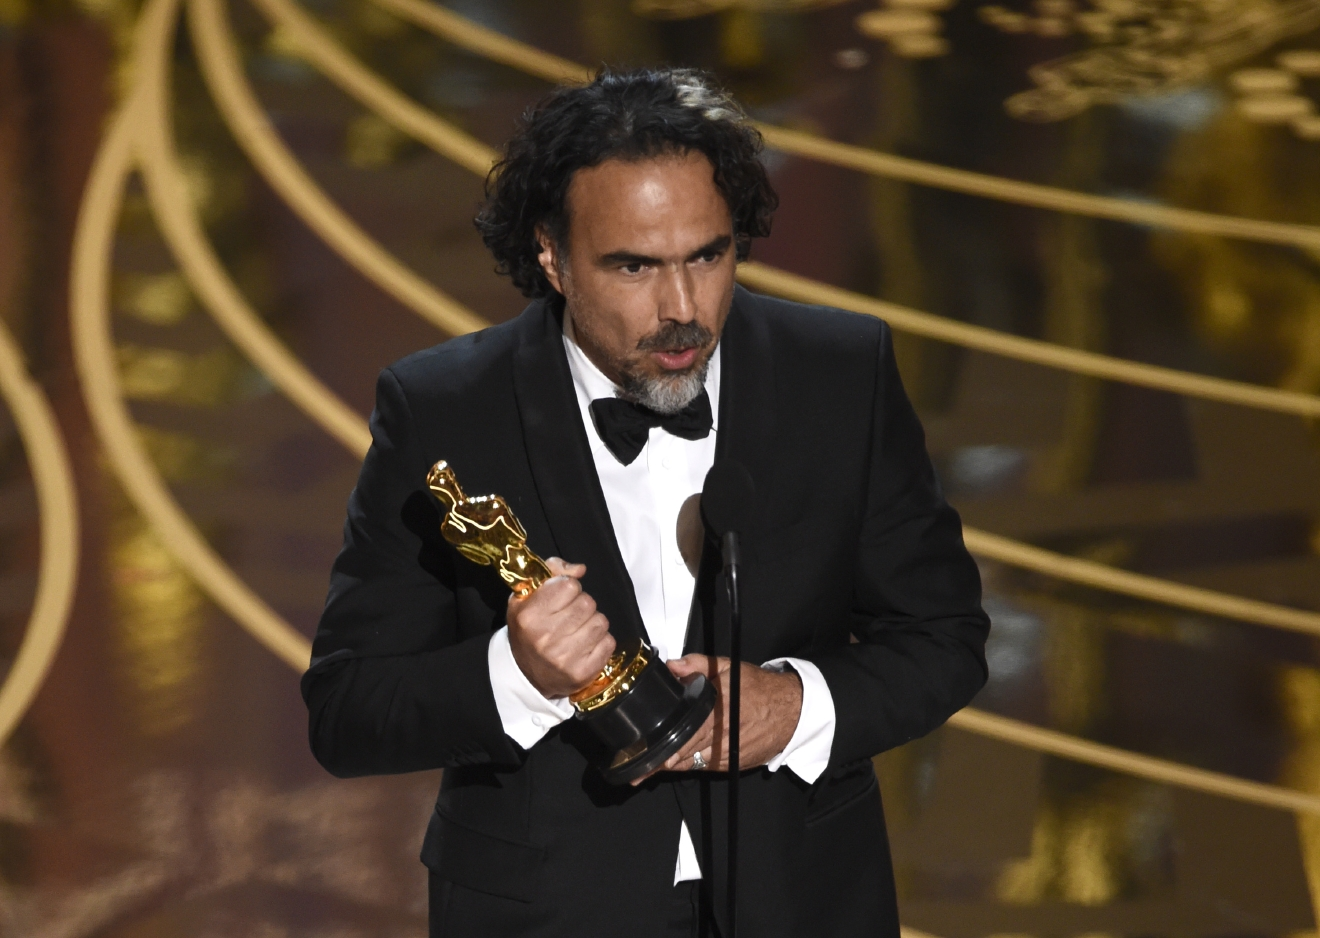 Alejandro G. Inarritu accepts the award for best director for Â?The RevenantÂ? at the Oscars on Sunday, Feb. 28, 2016, at the Dolby Theatre in Los Angeles. (Photo by Chris Pizzello/Invision/AP)